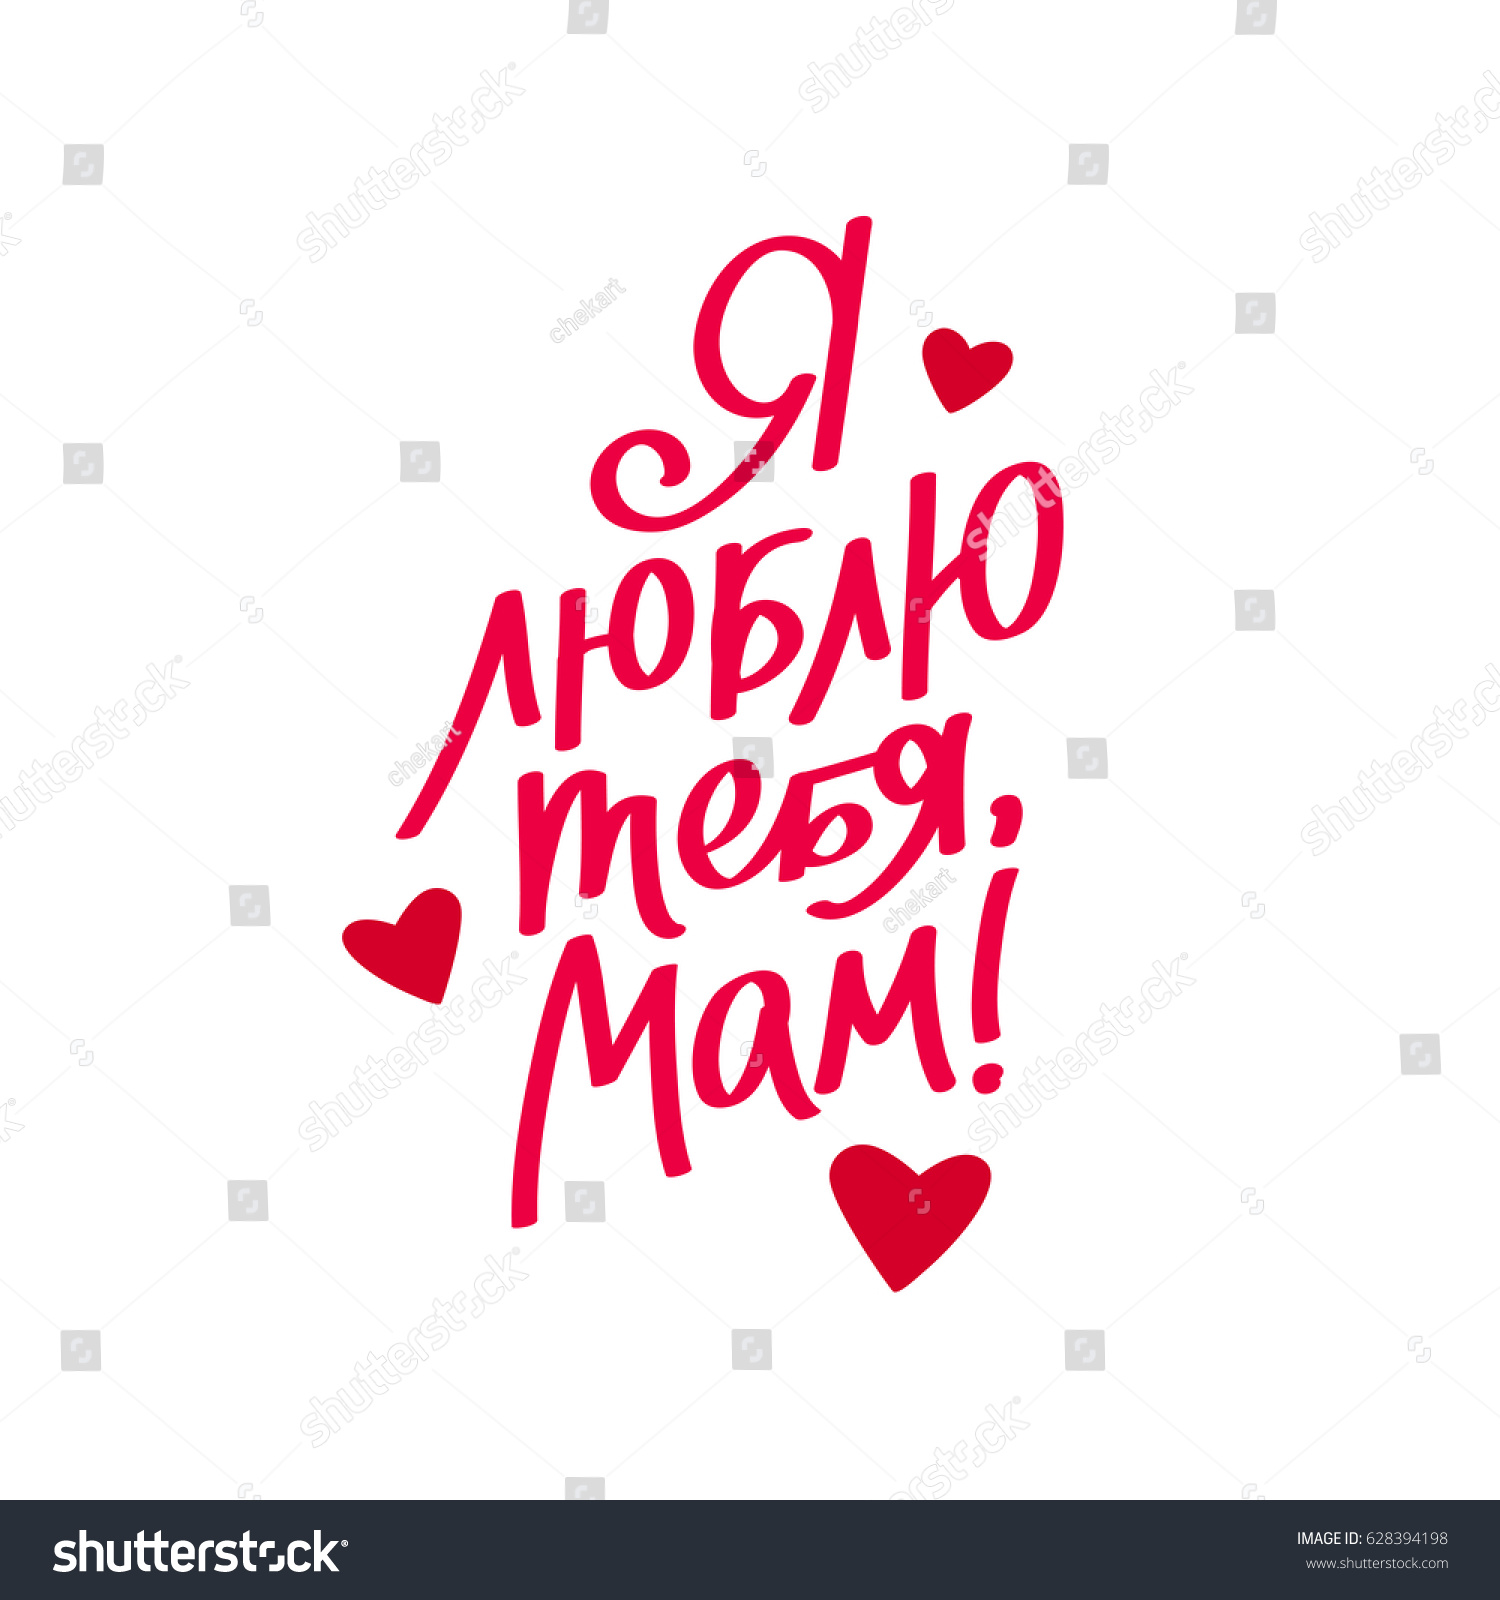 I Love You Mom Quotes Quote I Love You Mom Russian Stock Vector 628394198  Shutterstock